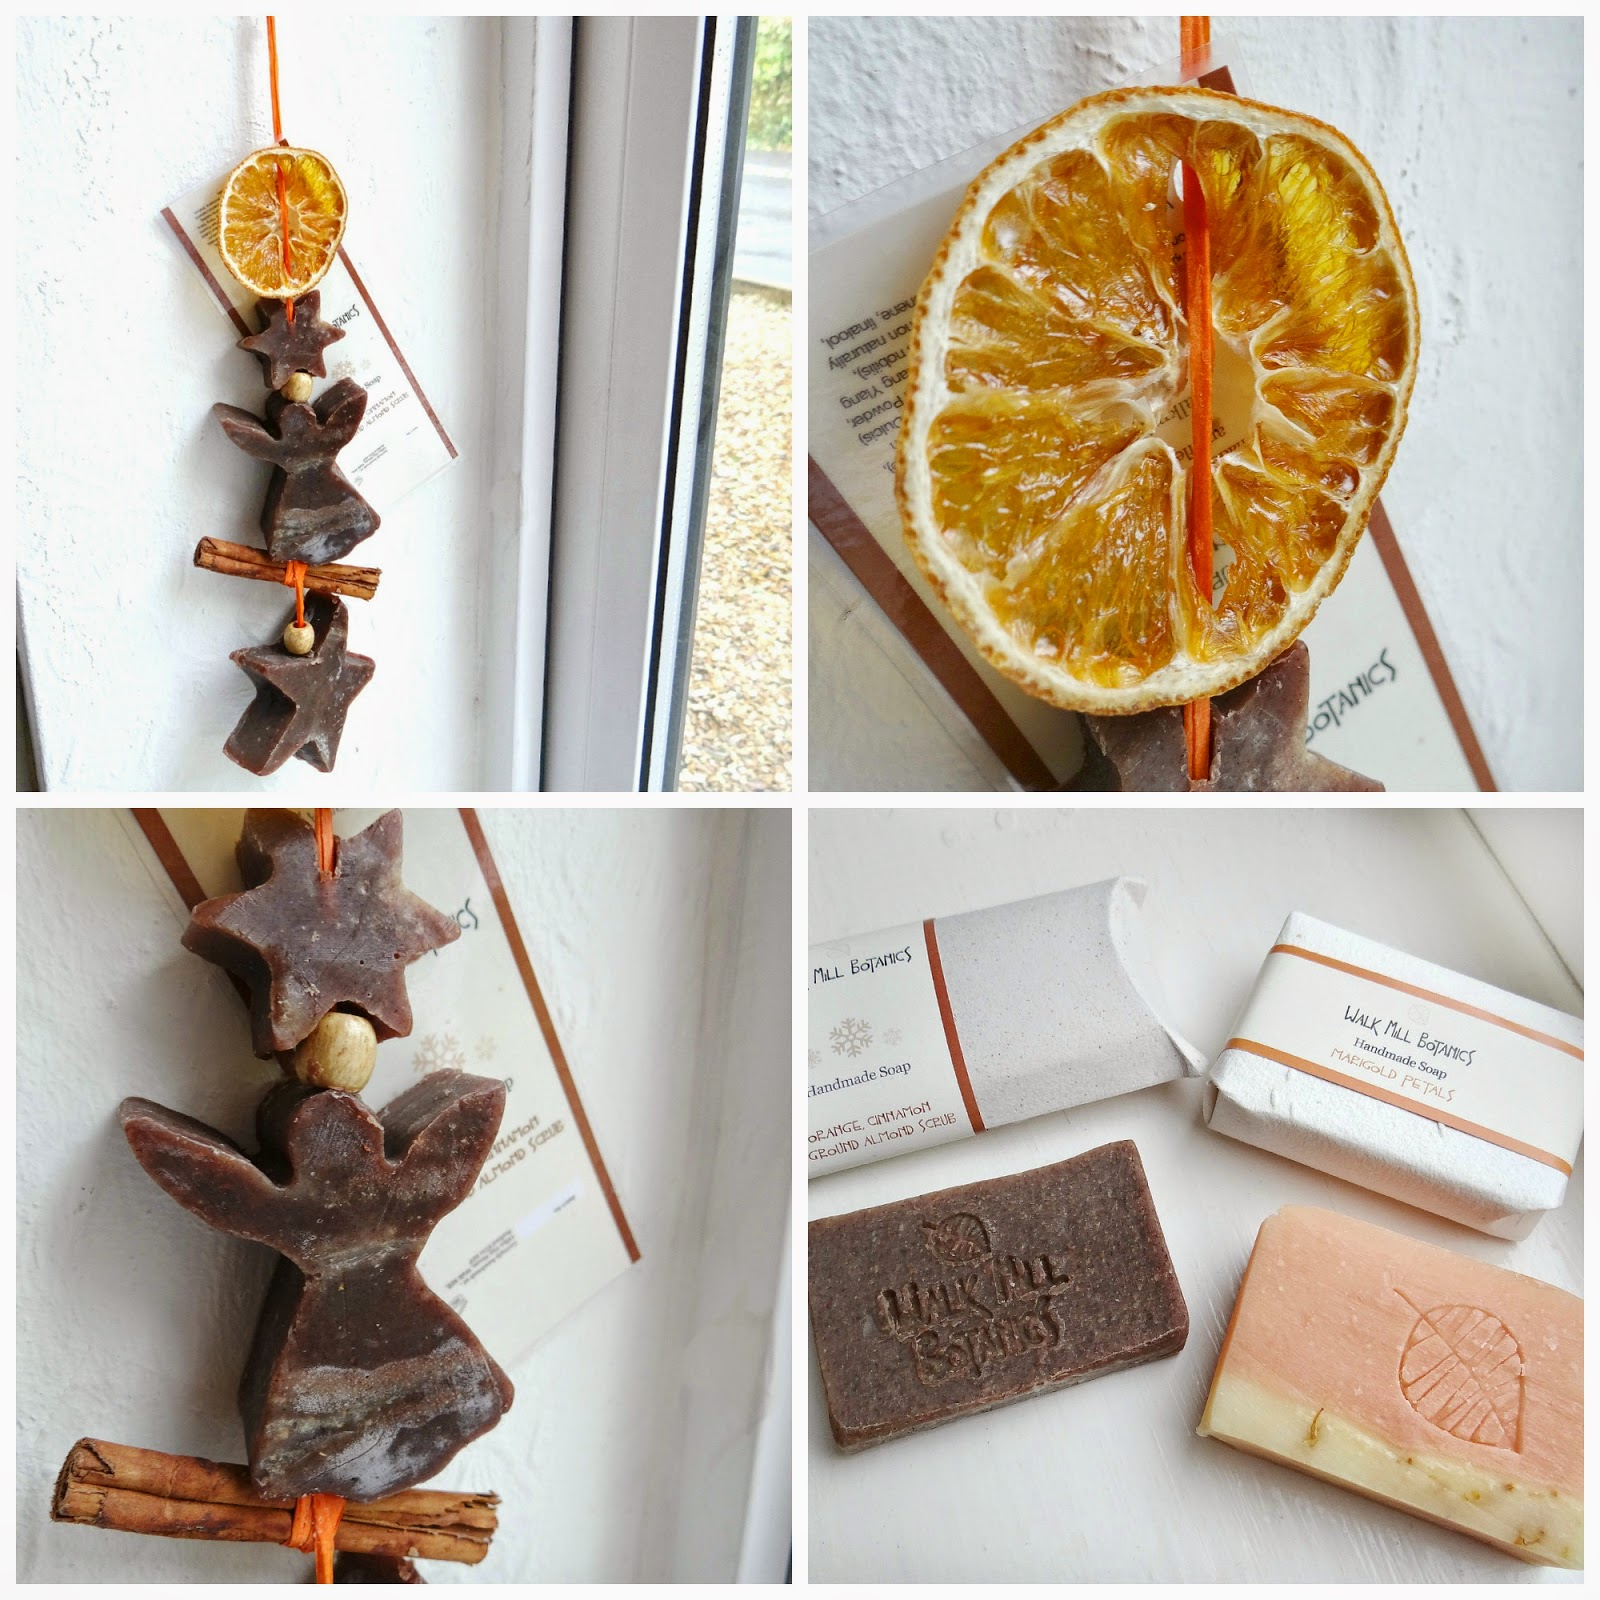 Christmas gifts guide 2014 adults this is life for Homemade christmas gifts for adults